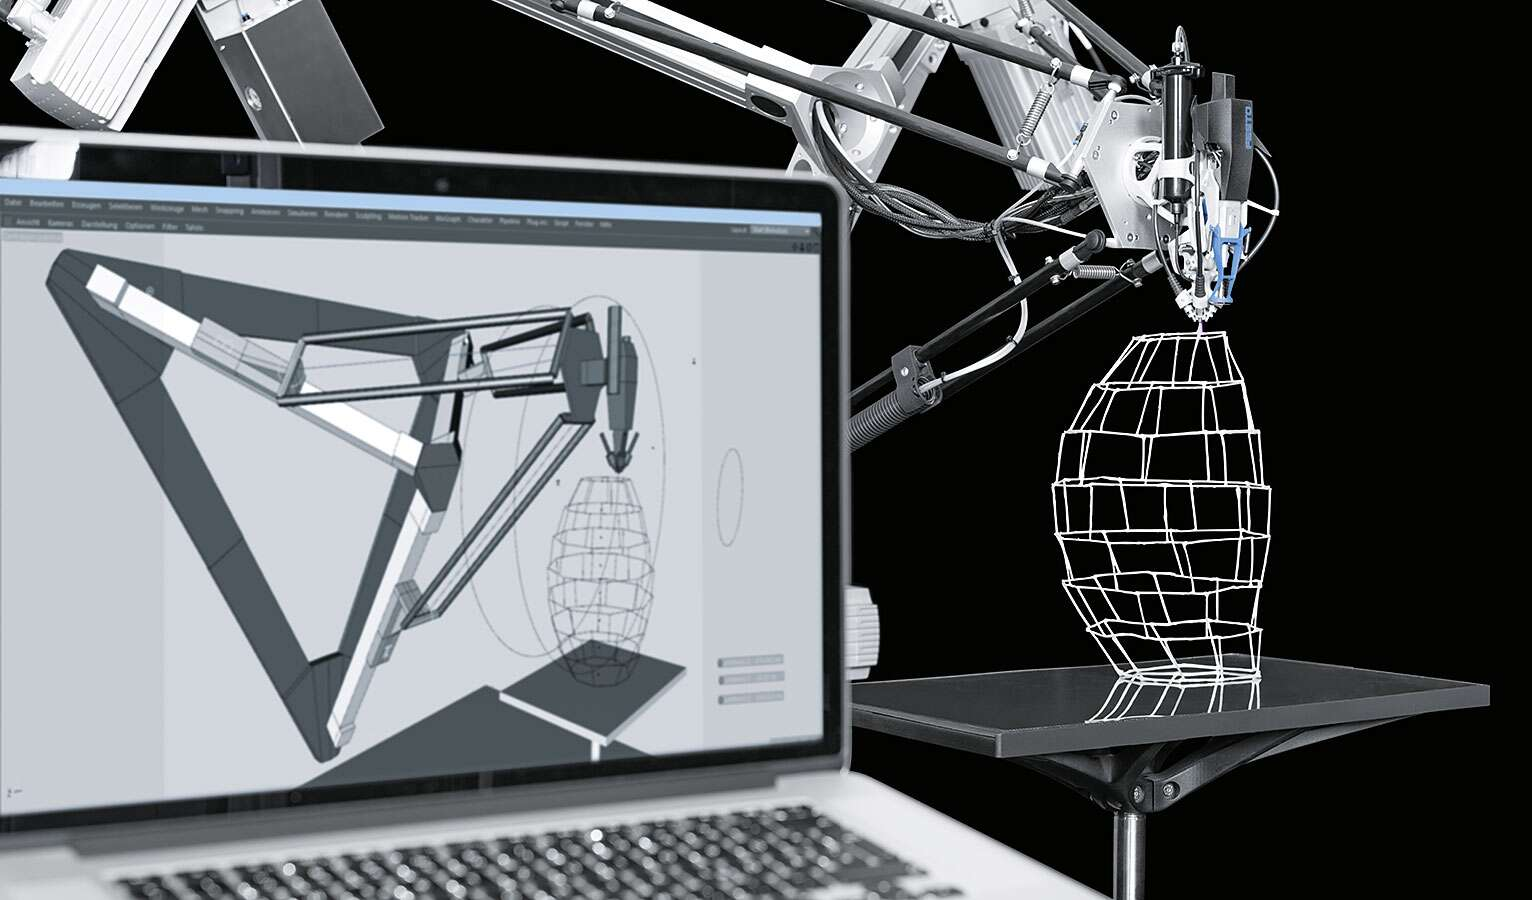 Digital fabrication: the software transfers the geometry of the structure directly to the tripod's travel paths